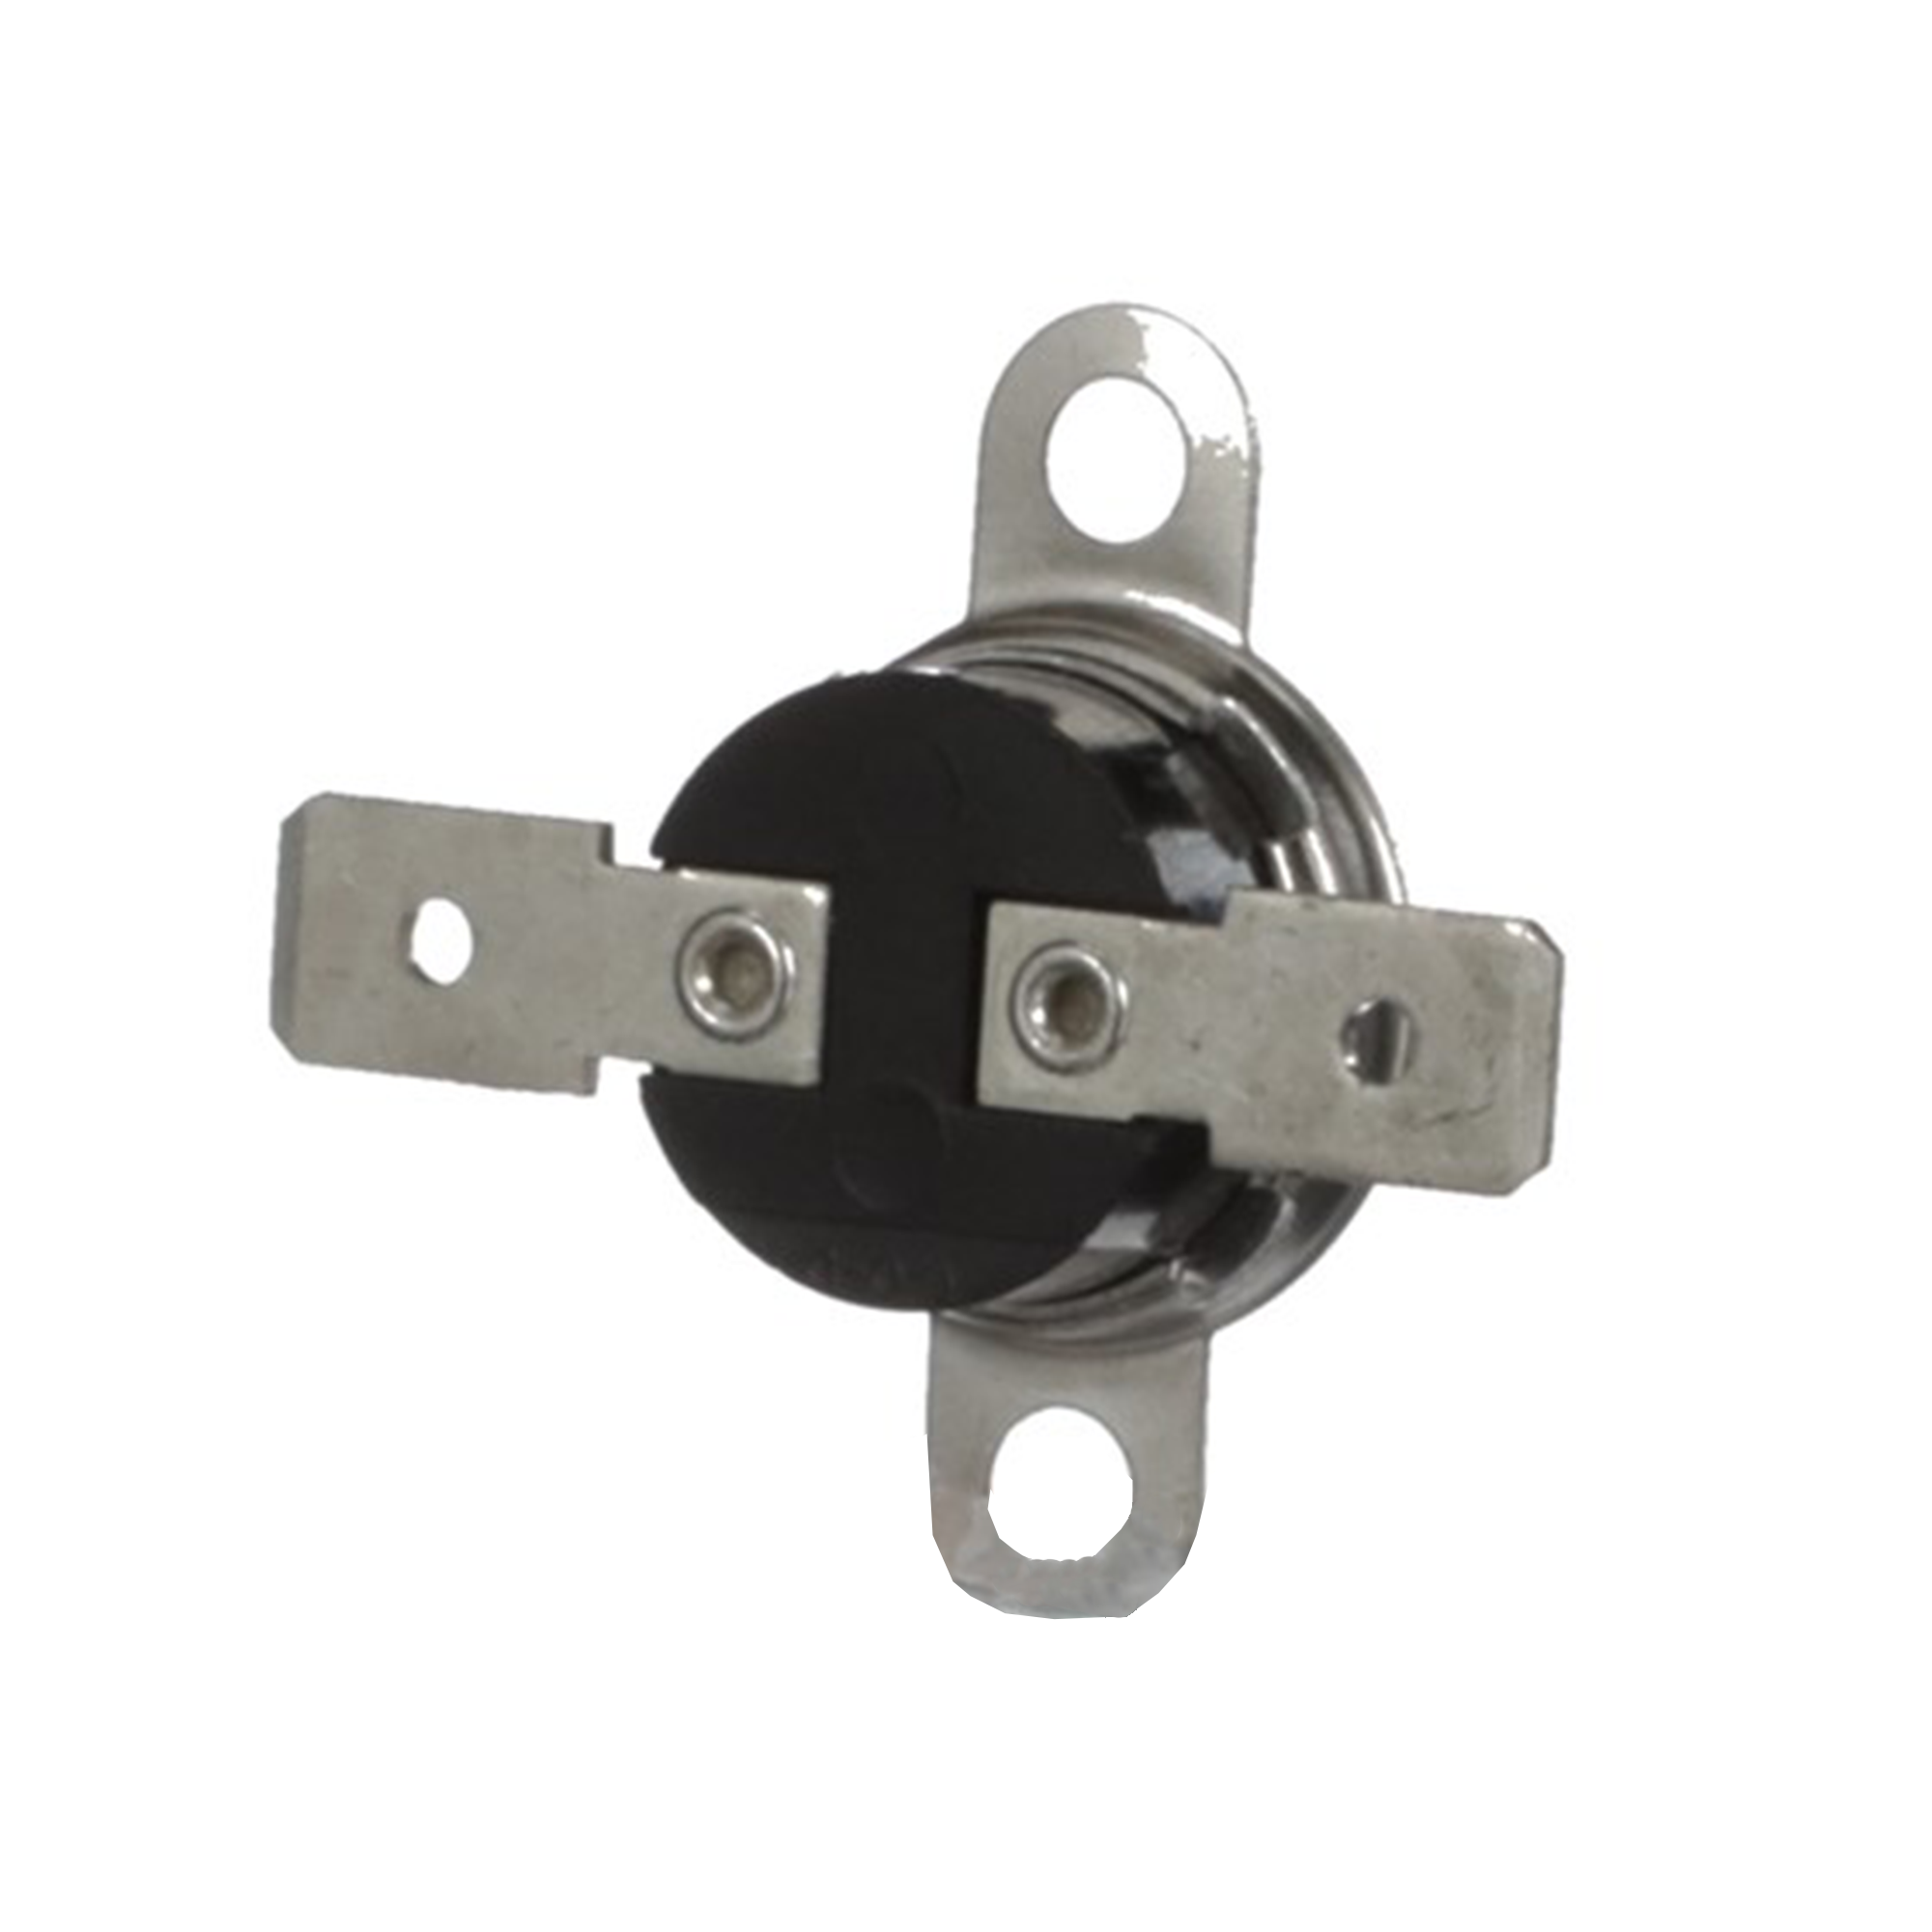 12150162 | Whitfield Cascade High Limit Switch 190-20F, 12150162